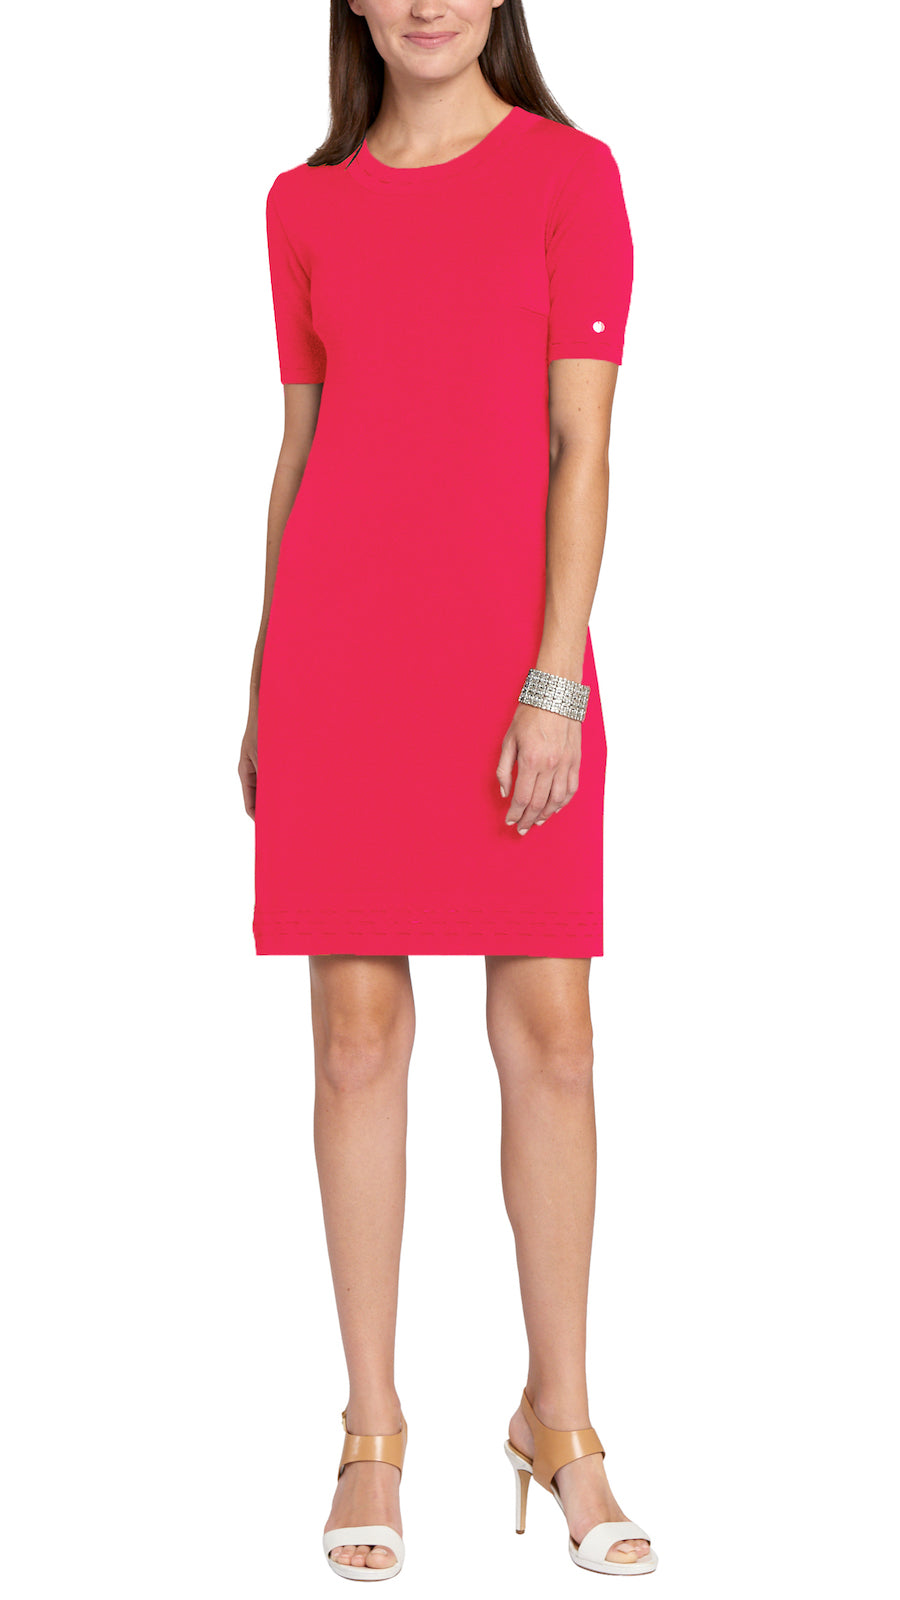 Adelle Milano-knit Dress, Coral Pink